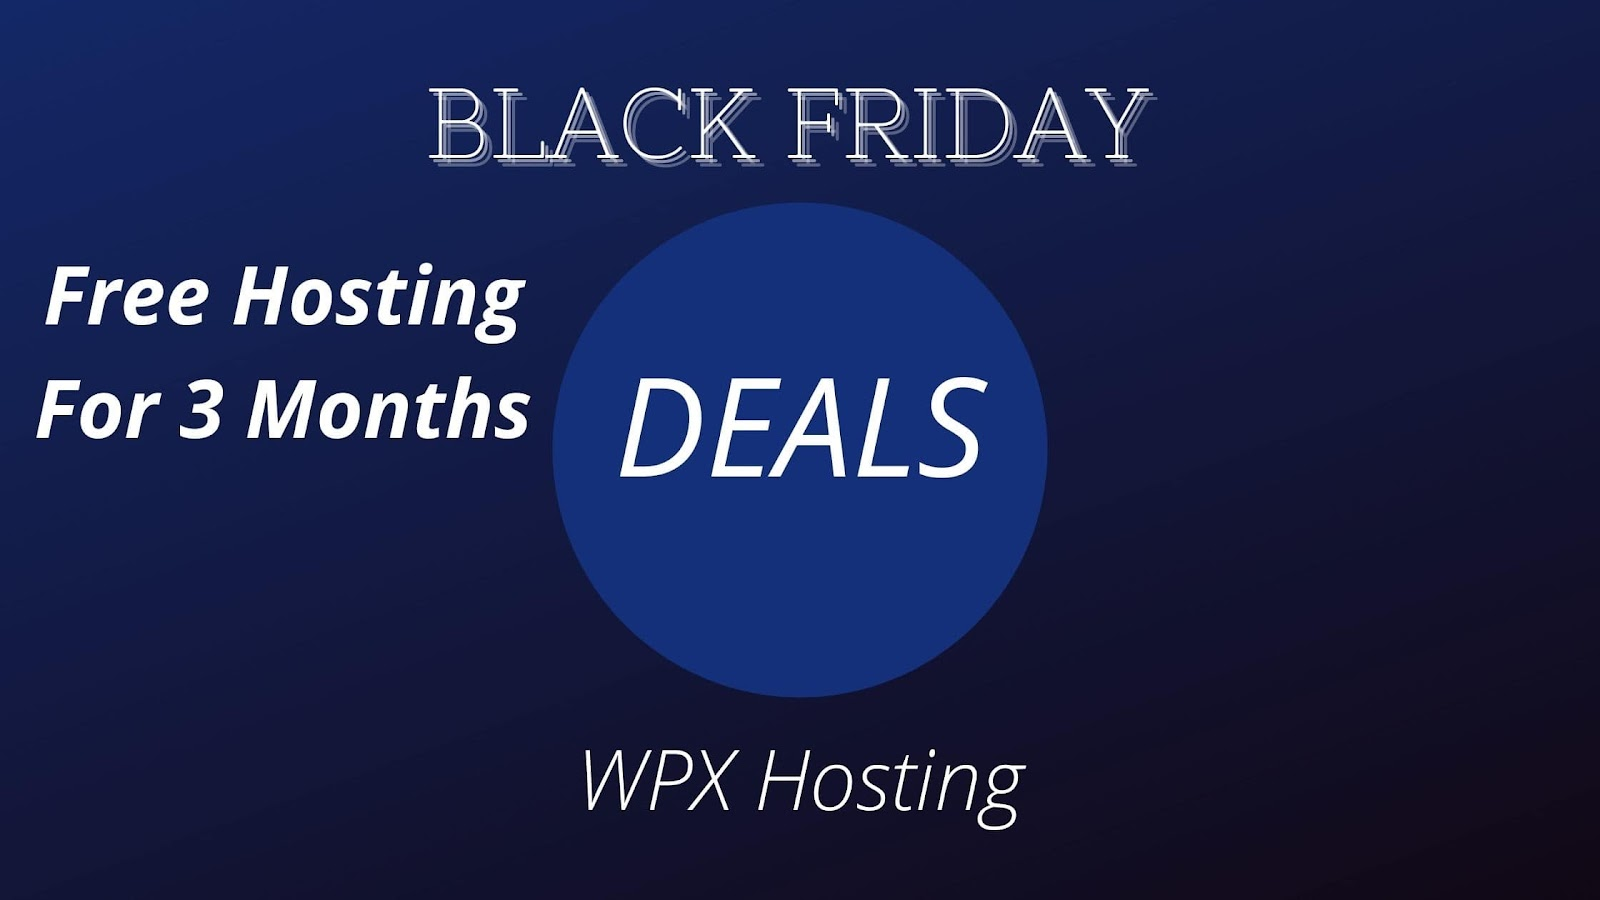 WPX- Free Hosting For 3 Months